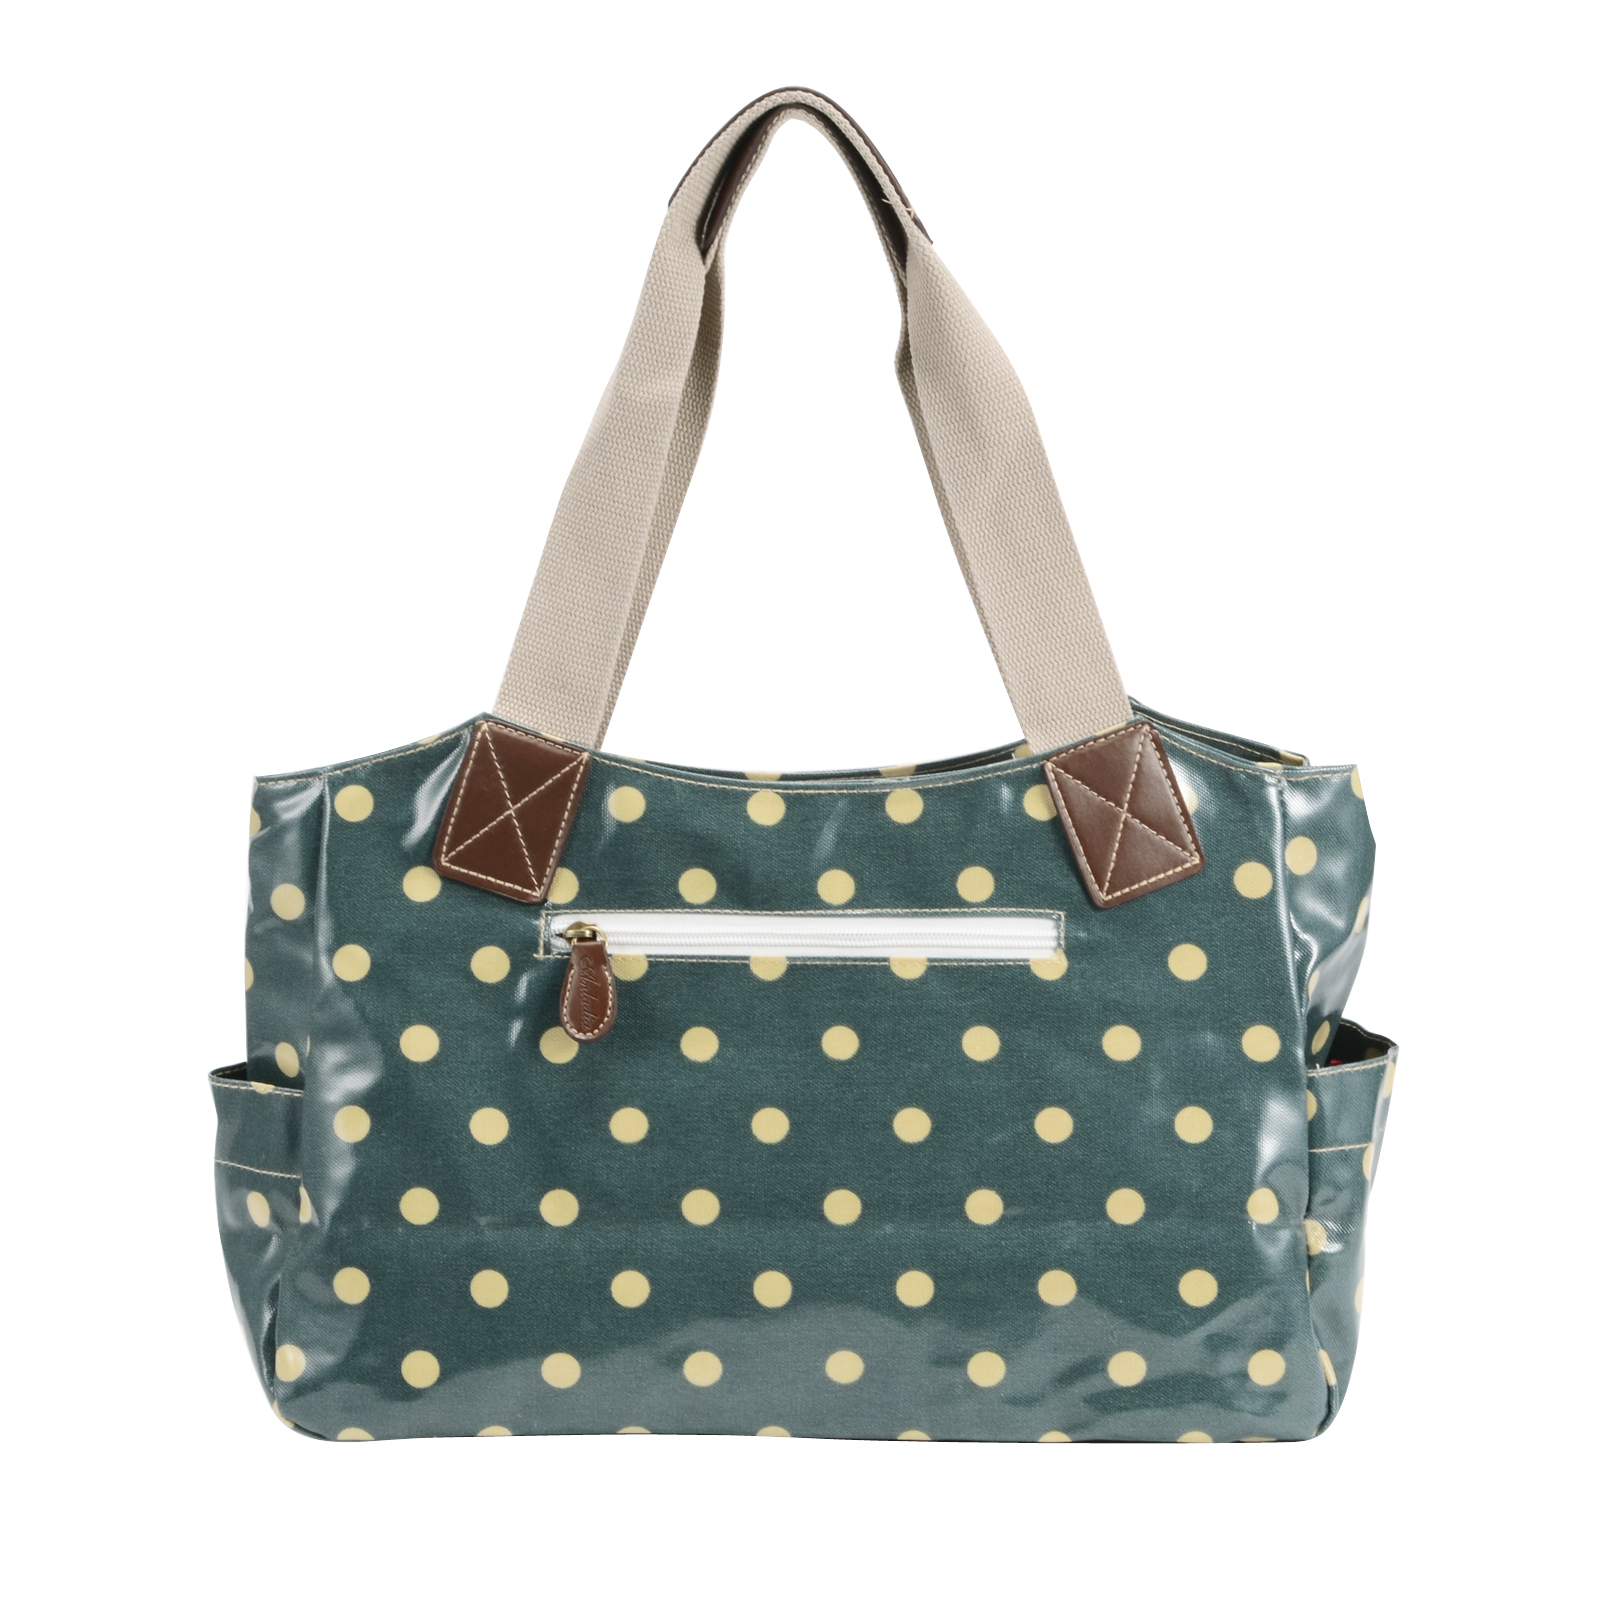 Green oilcloth shoulder bag for Au maison oilcloth uk